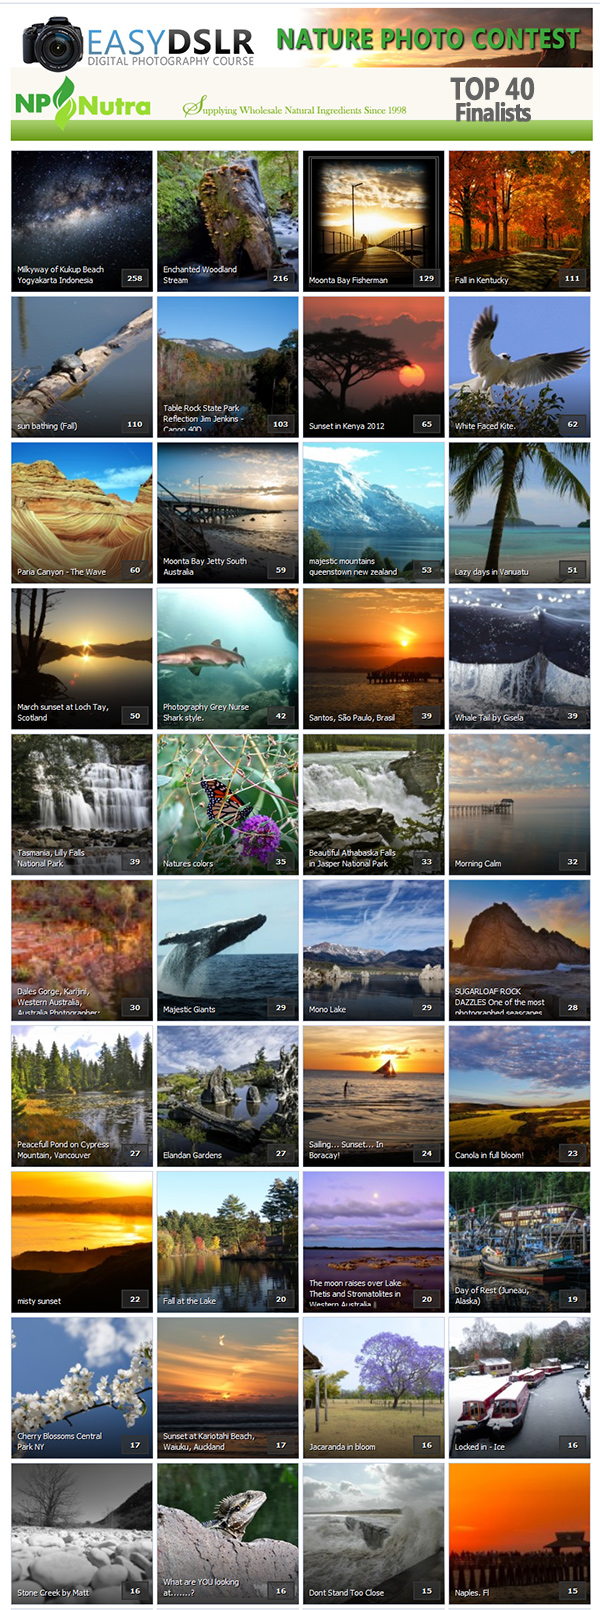 EasyDSLR Members 2013 Photo Contest Top 40